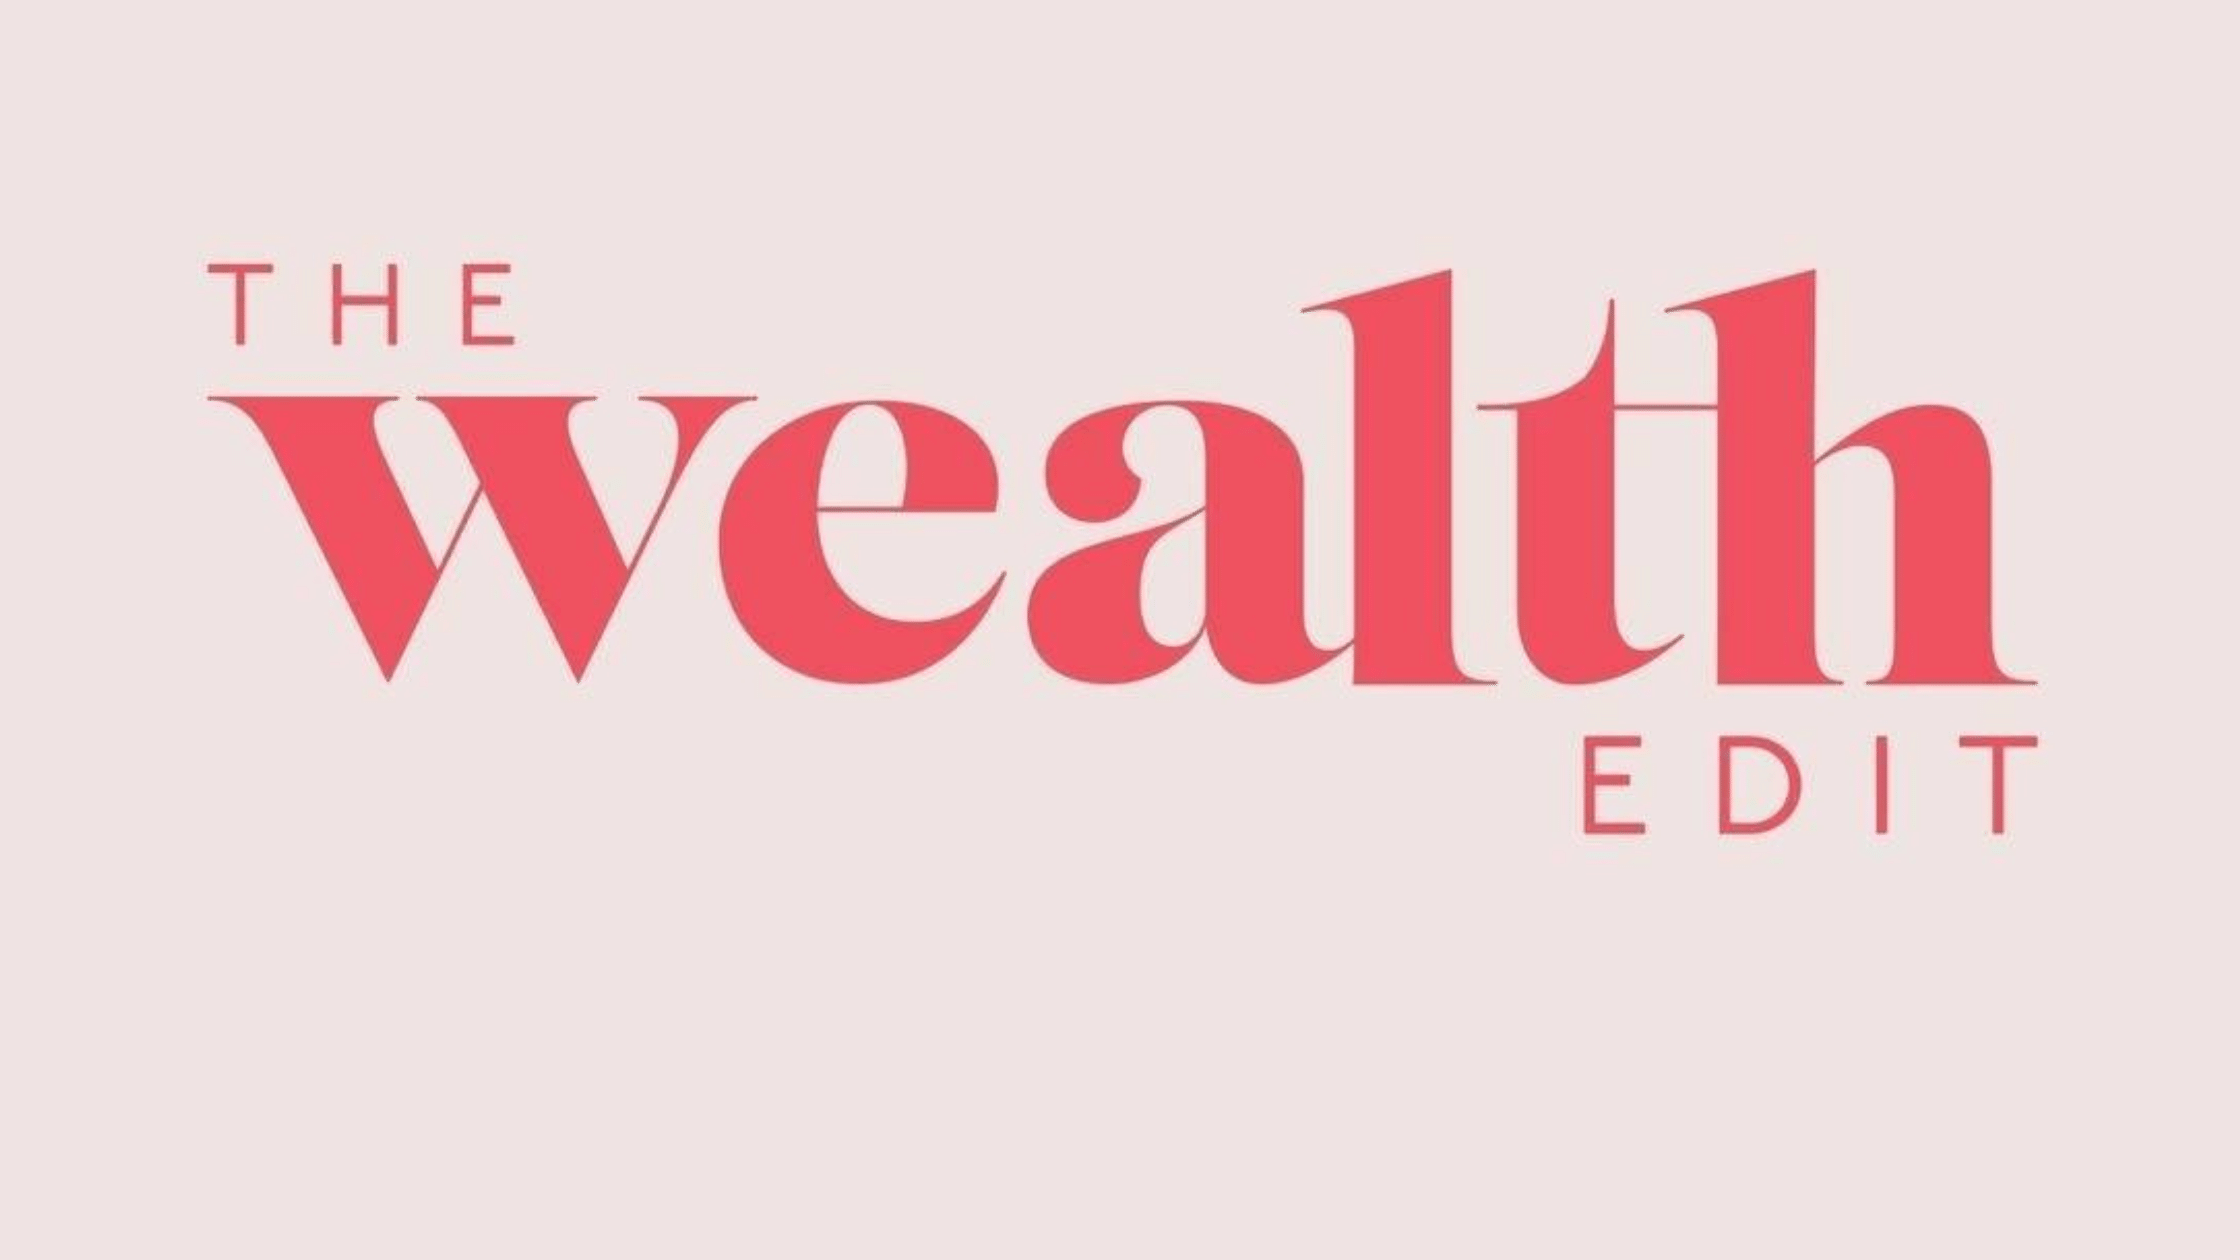 The Wealth Edit Logo for discussion on how Boulo helps women get back into the workforce